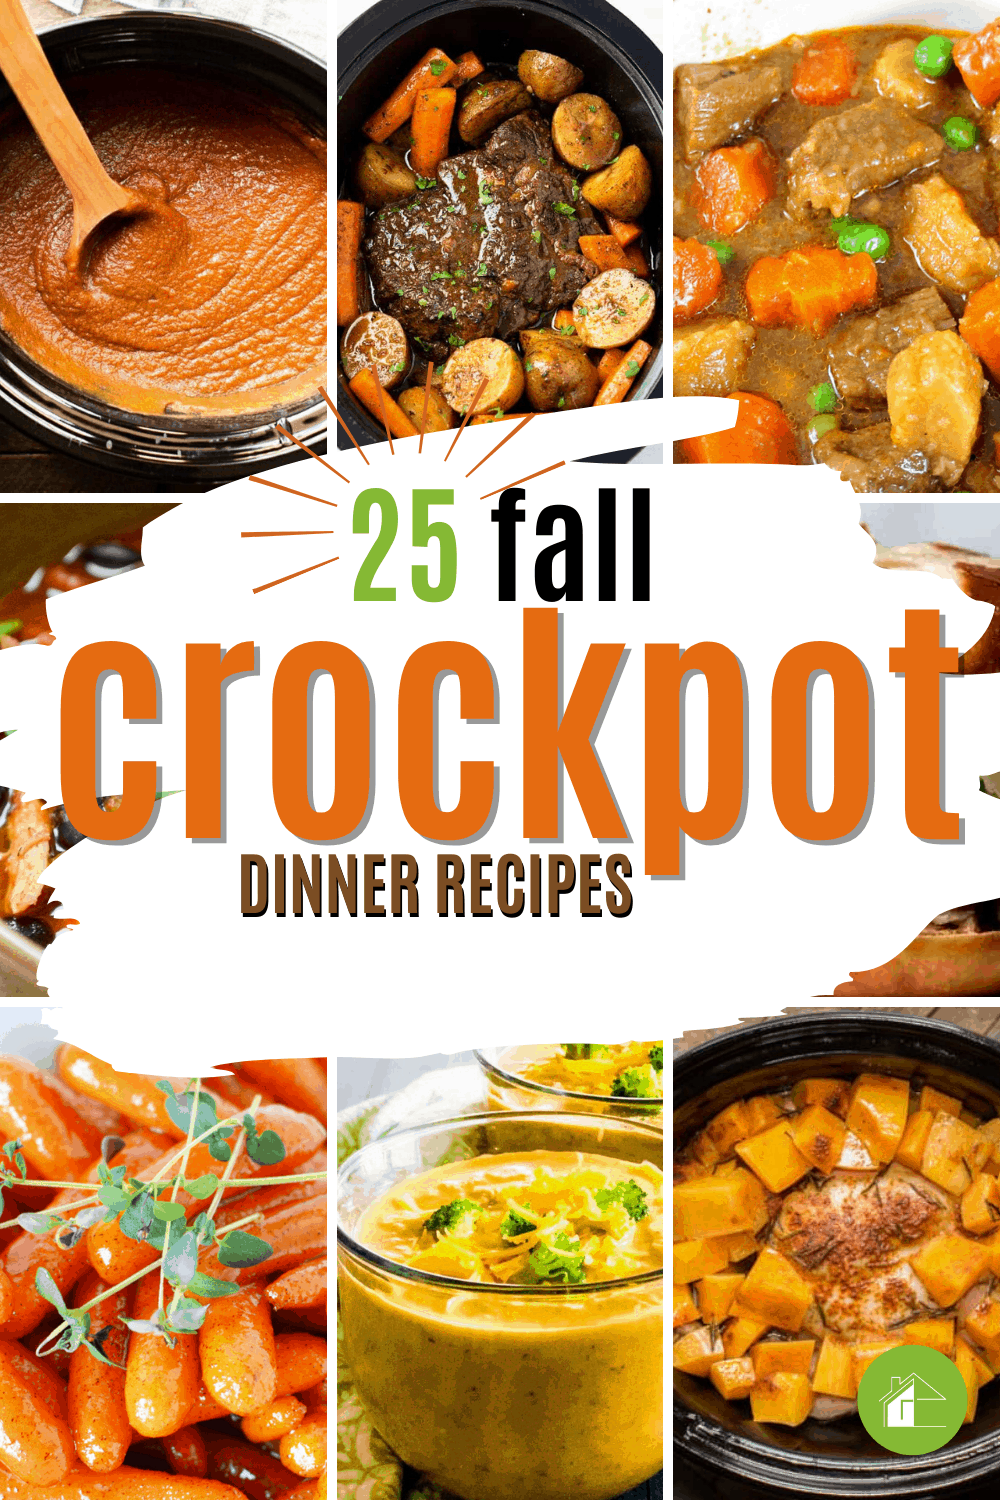 Get all the fall flavors you love with these slow cooker recipes! From fall desserts to hearty stews, there's something for every taste. #fallcrocopotrecipes #crockpotrecipes #fallrecipes via @mystayathome